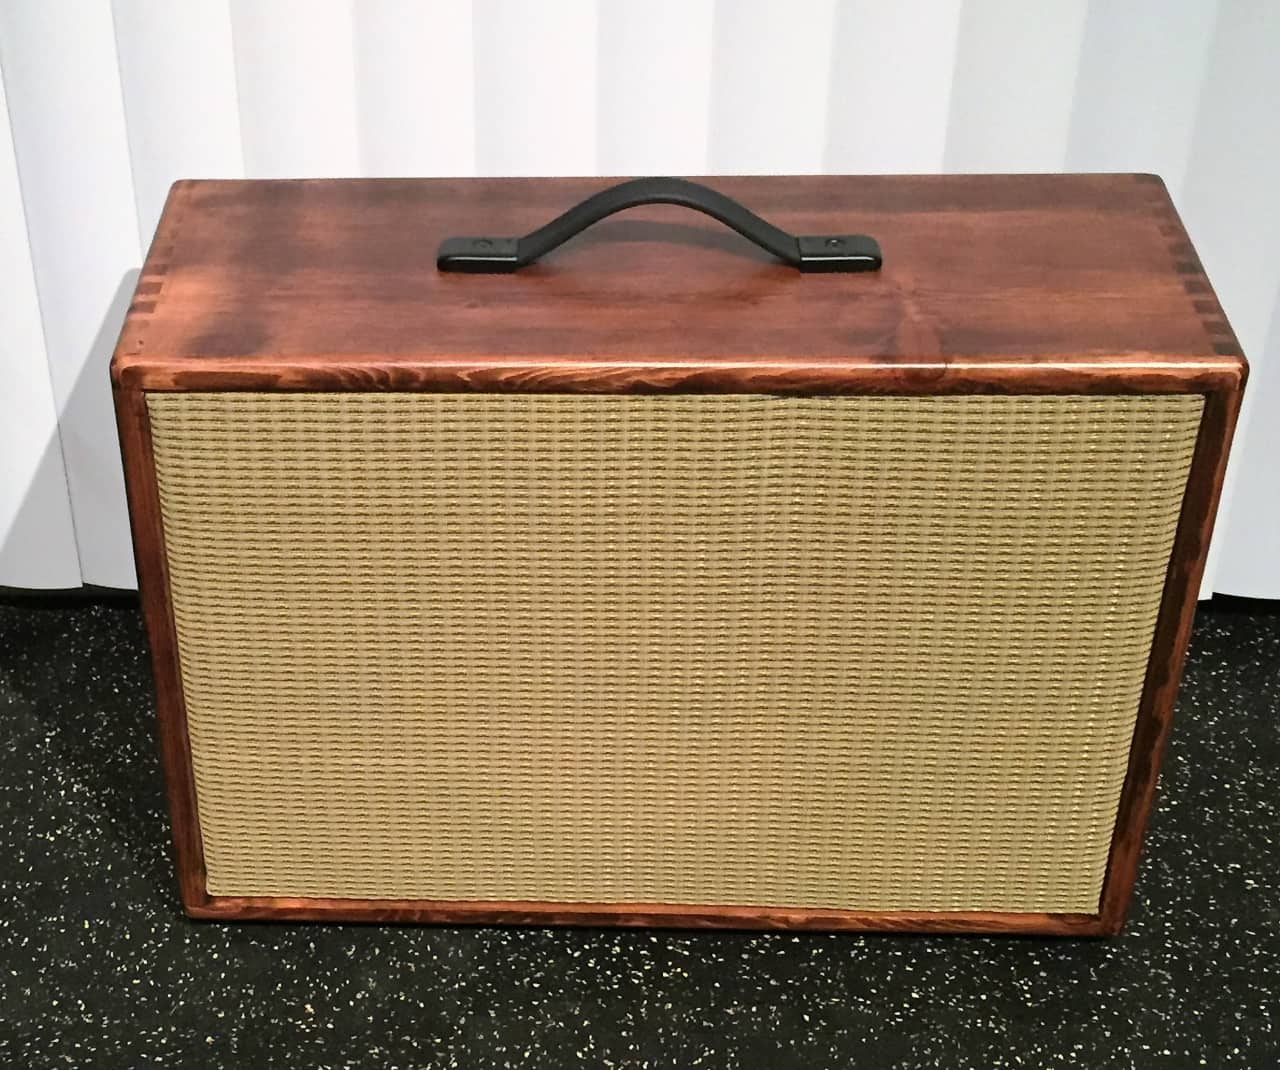 Knotty Pine Kitchen Cabinets For Sale: SactoCabs Fender Deluxe Reverb Extension Cabinet